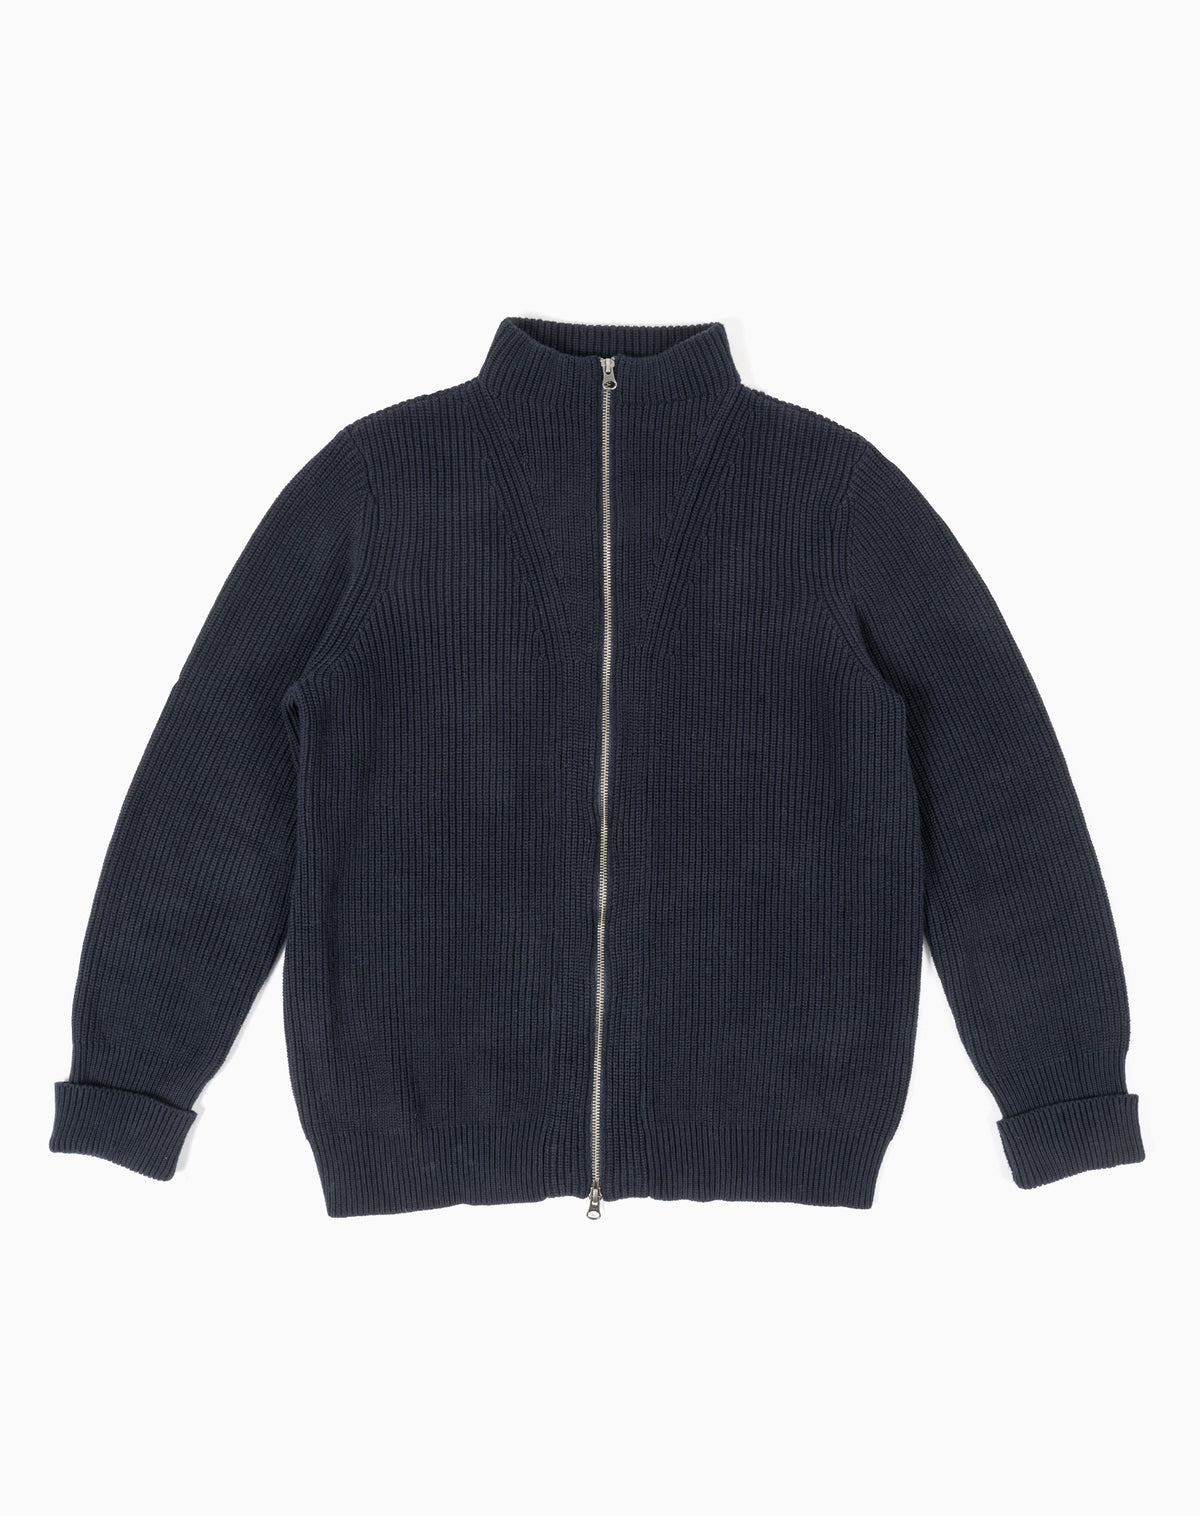 Falmouth Zip Sweater